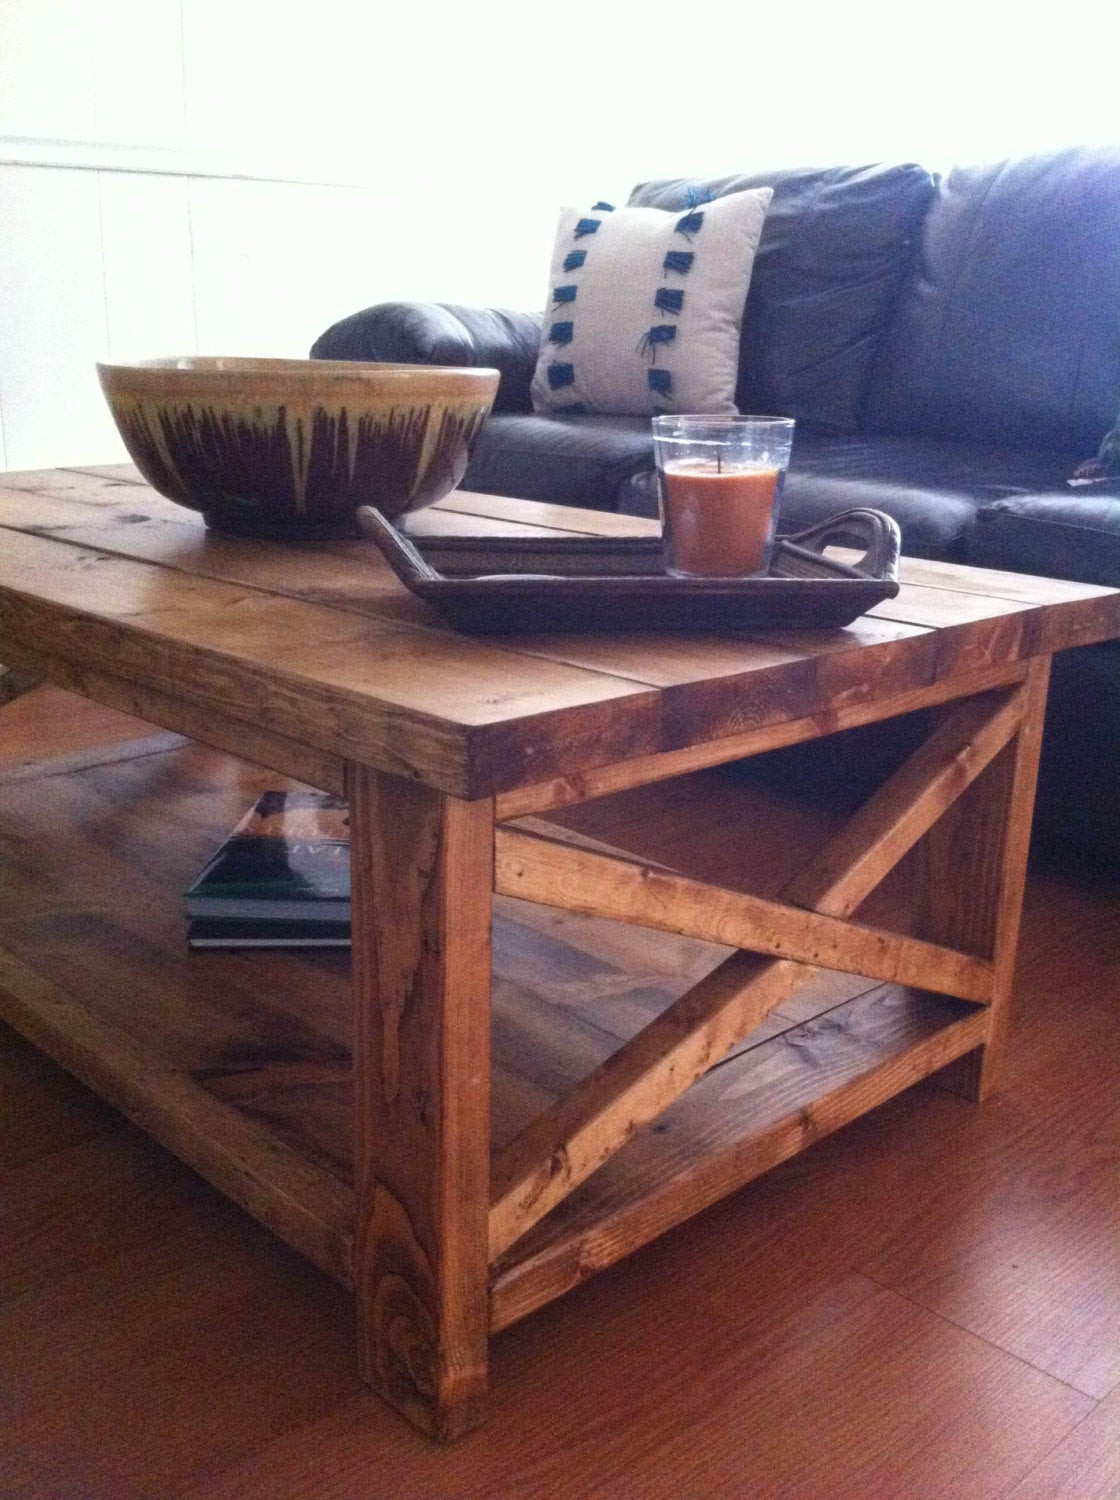 Best ideas about Farmhouse Coffee Table . Save or Pin Handmade Rustic X Wood Farmhouse Coffee Table Now.